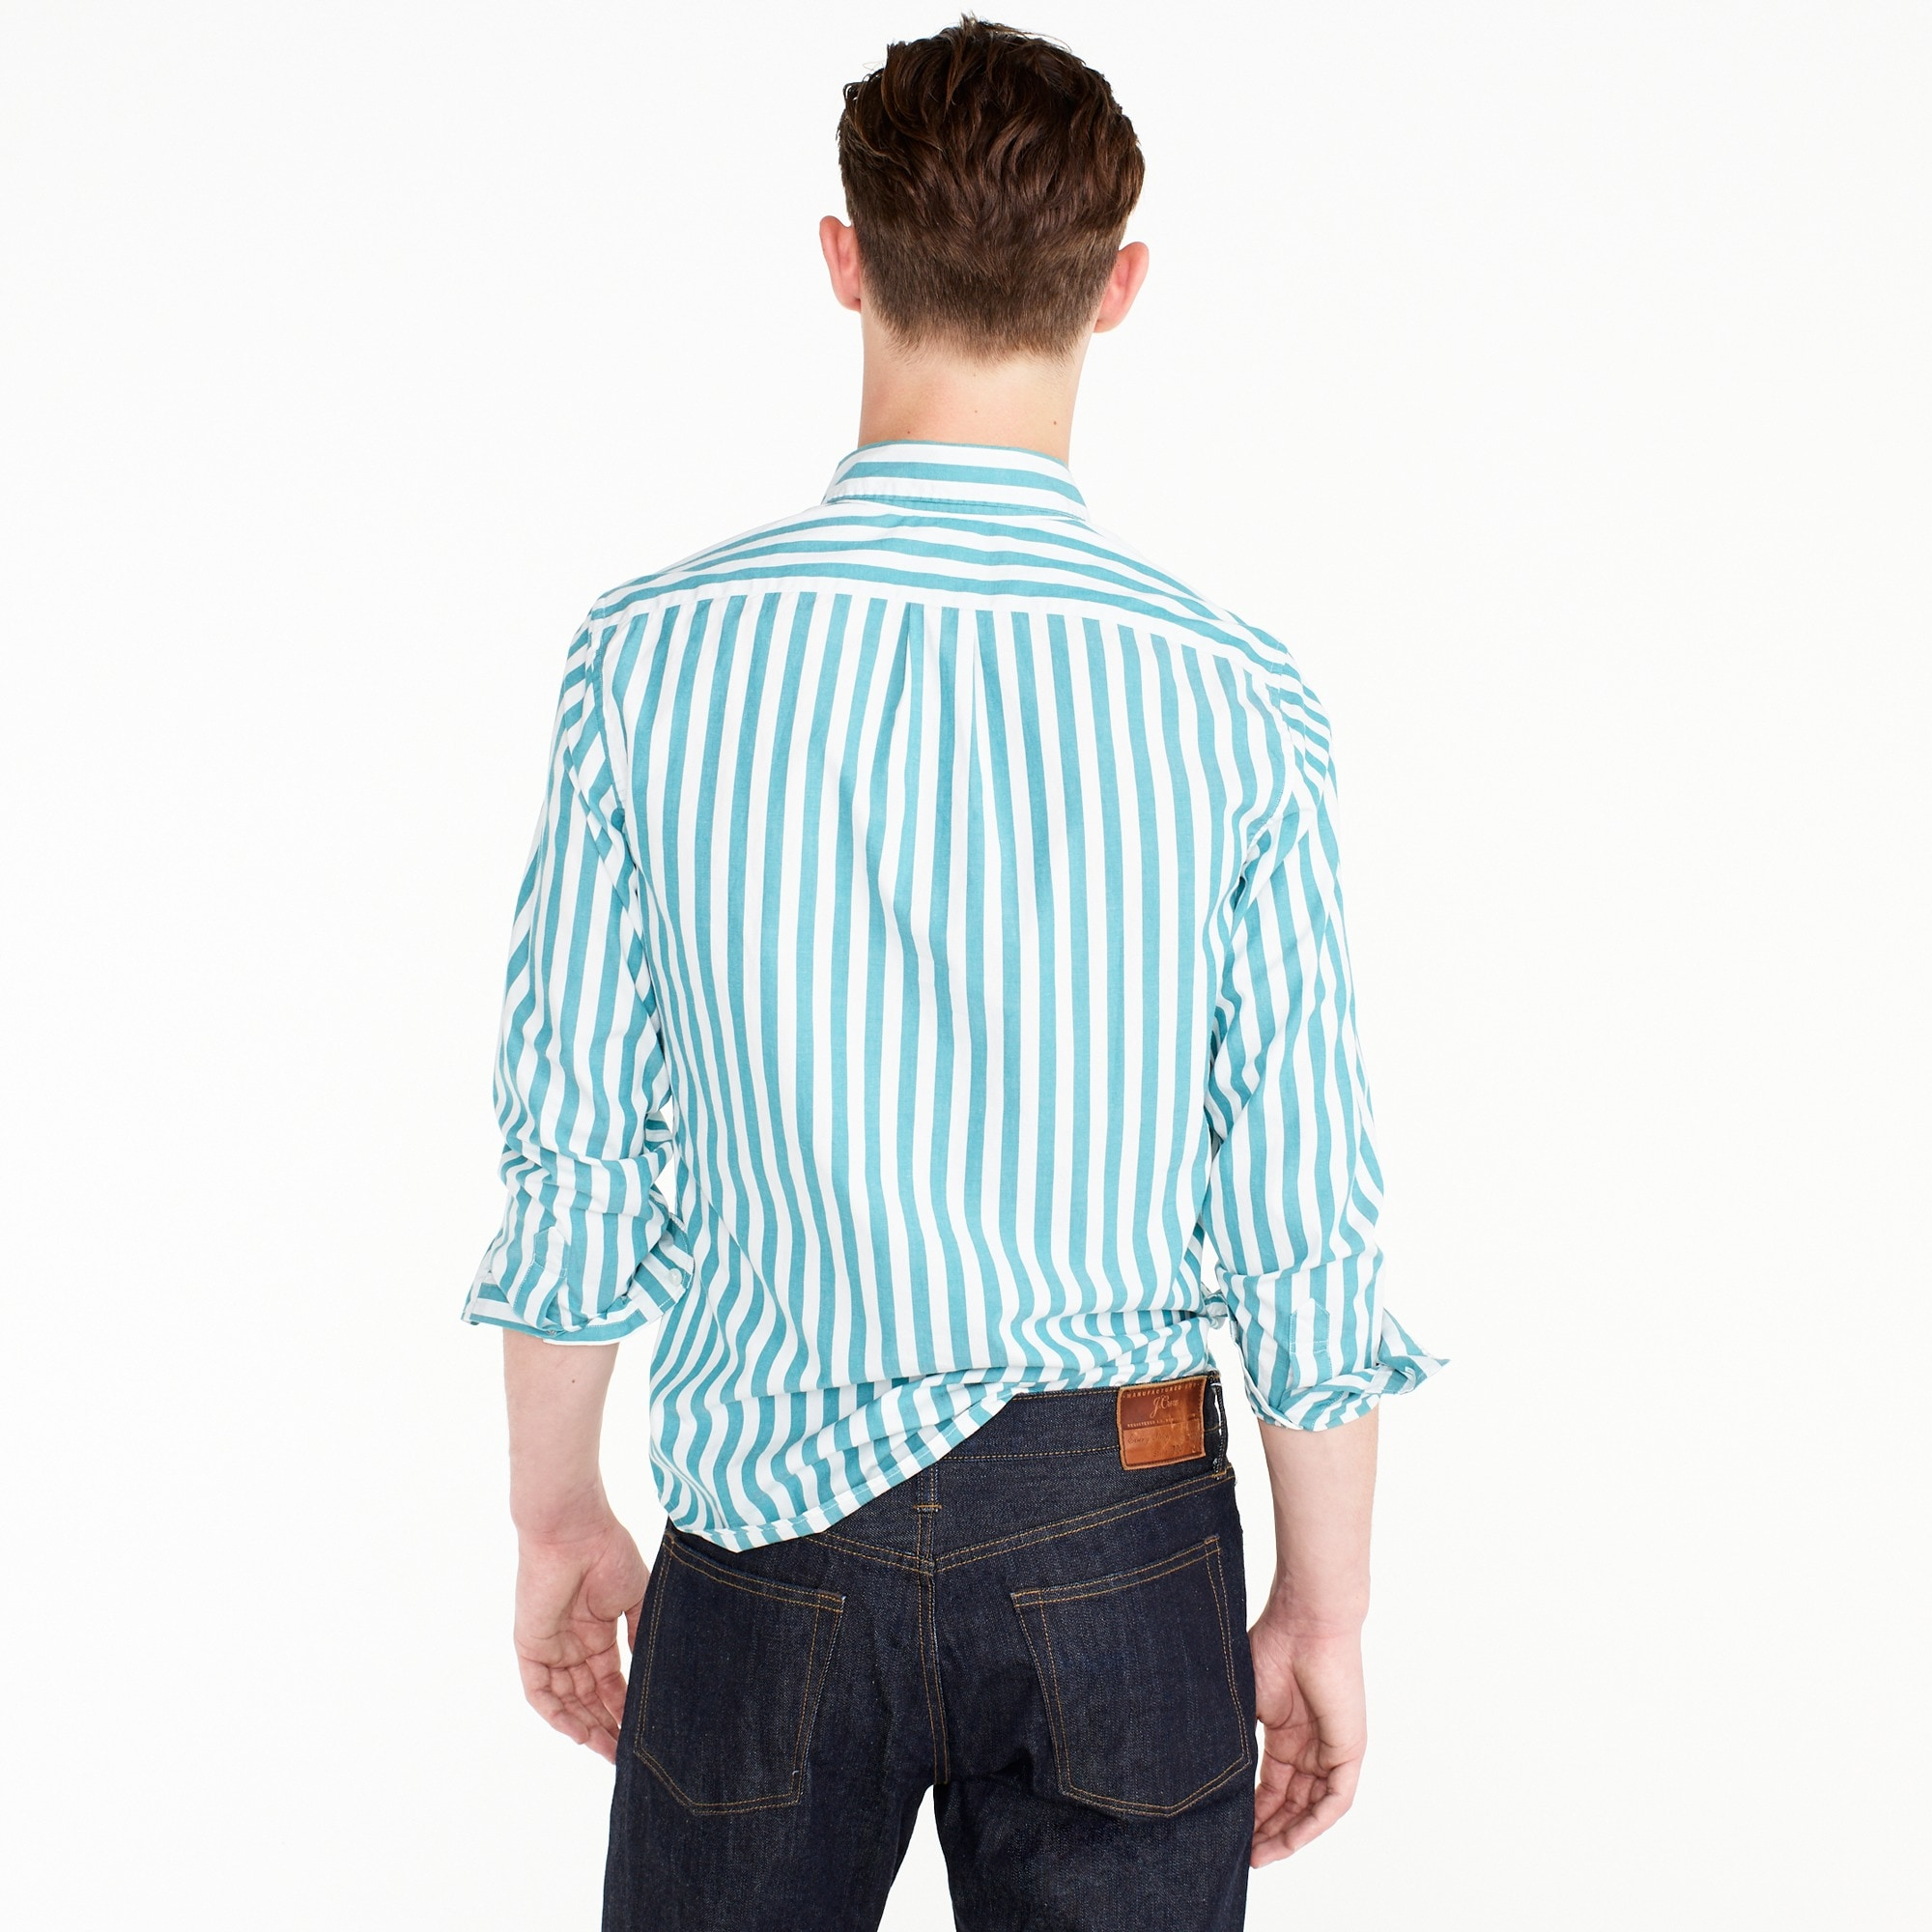 Image 2 for Slim stretch Secret Wash shirt in turquoise stripe